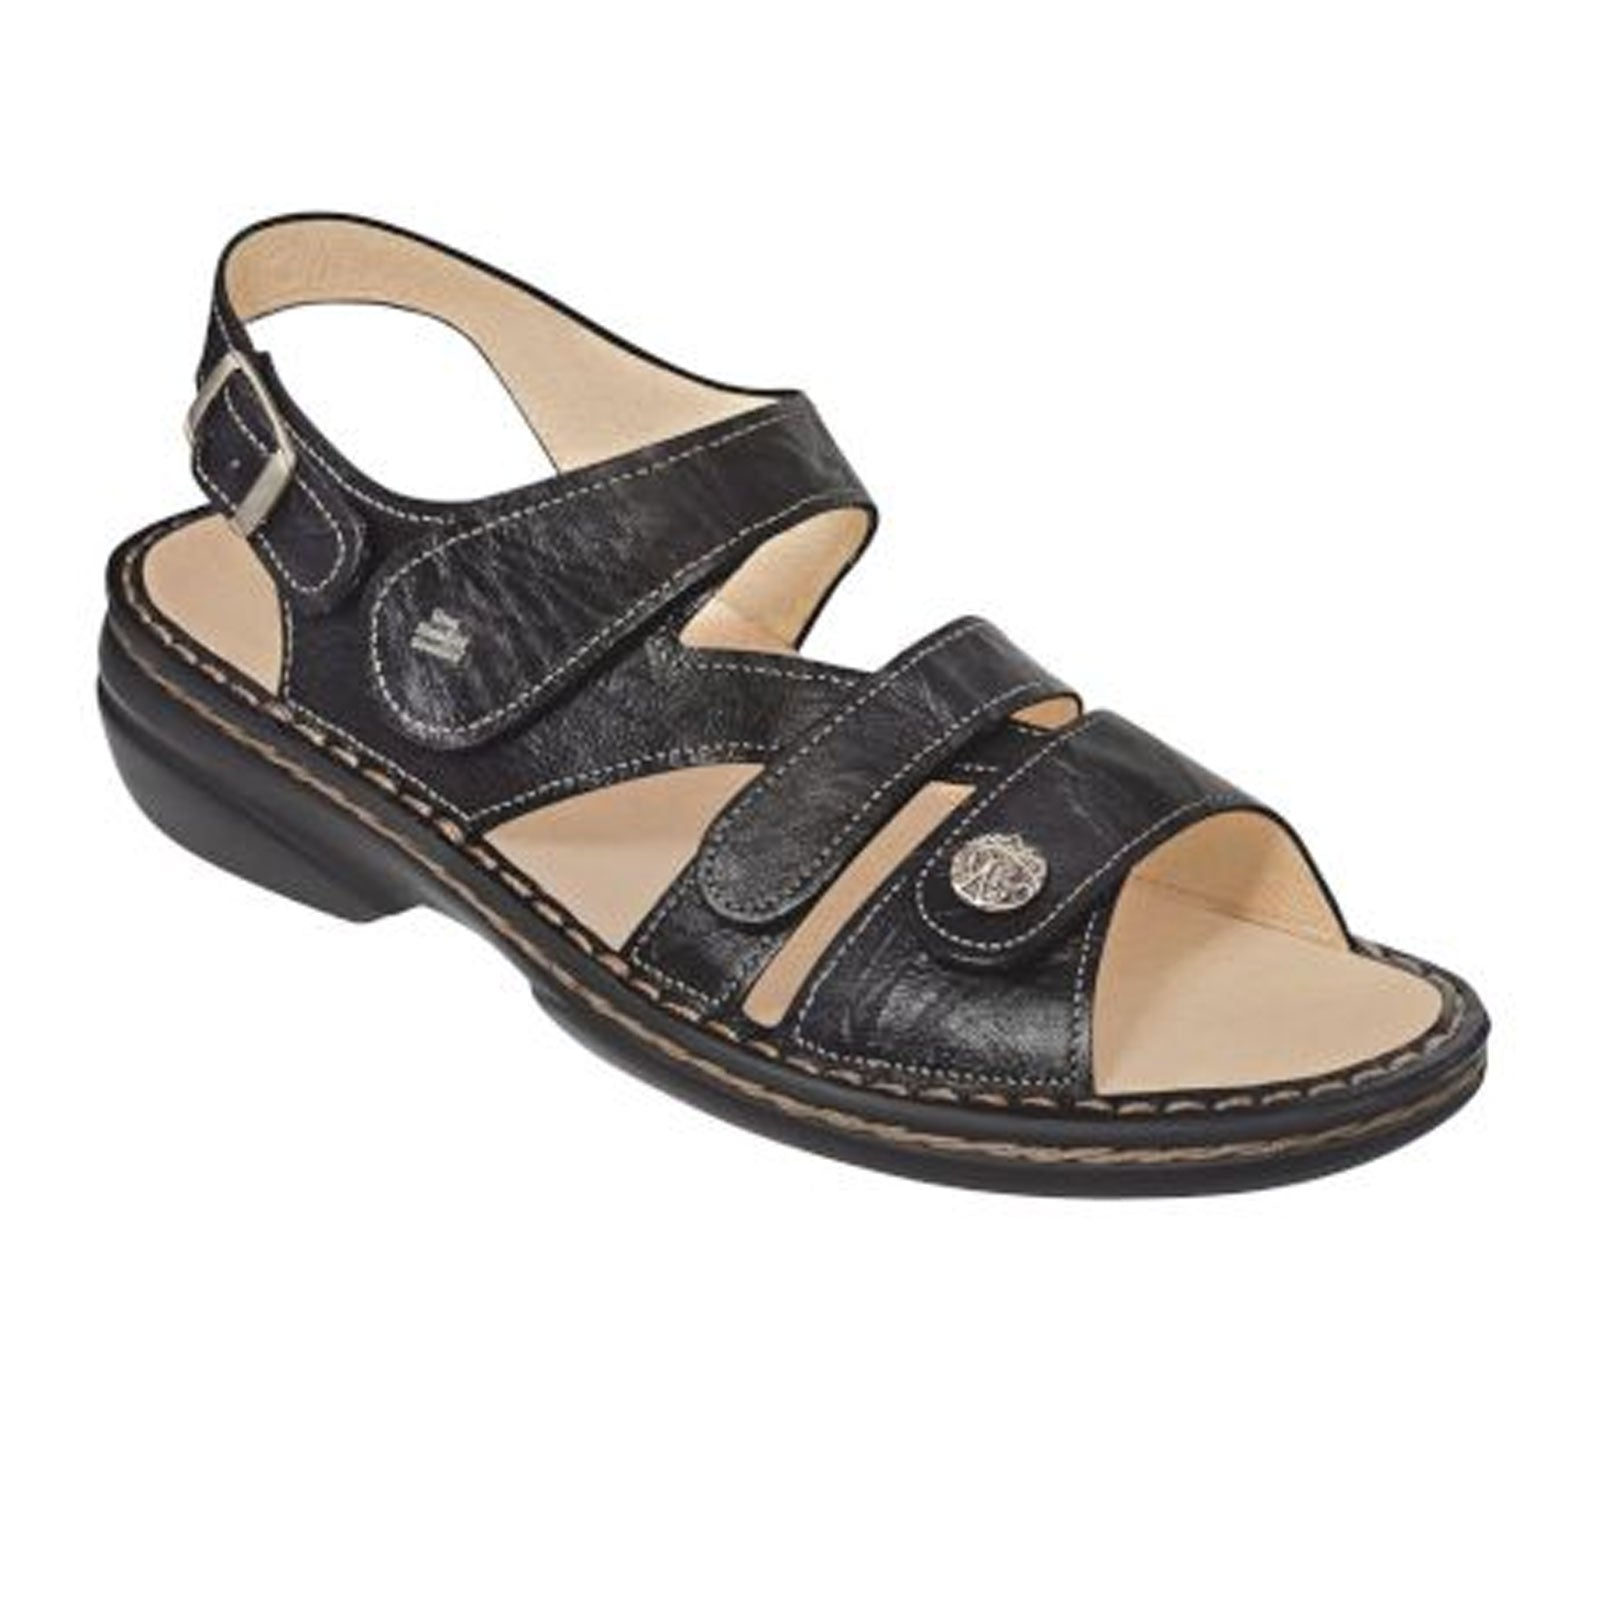 Finn Comfort Gomera-S (Women) - Black Sandals|Backstrap Sandals - The Heel Shoe Fitters